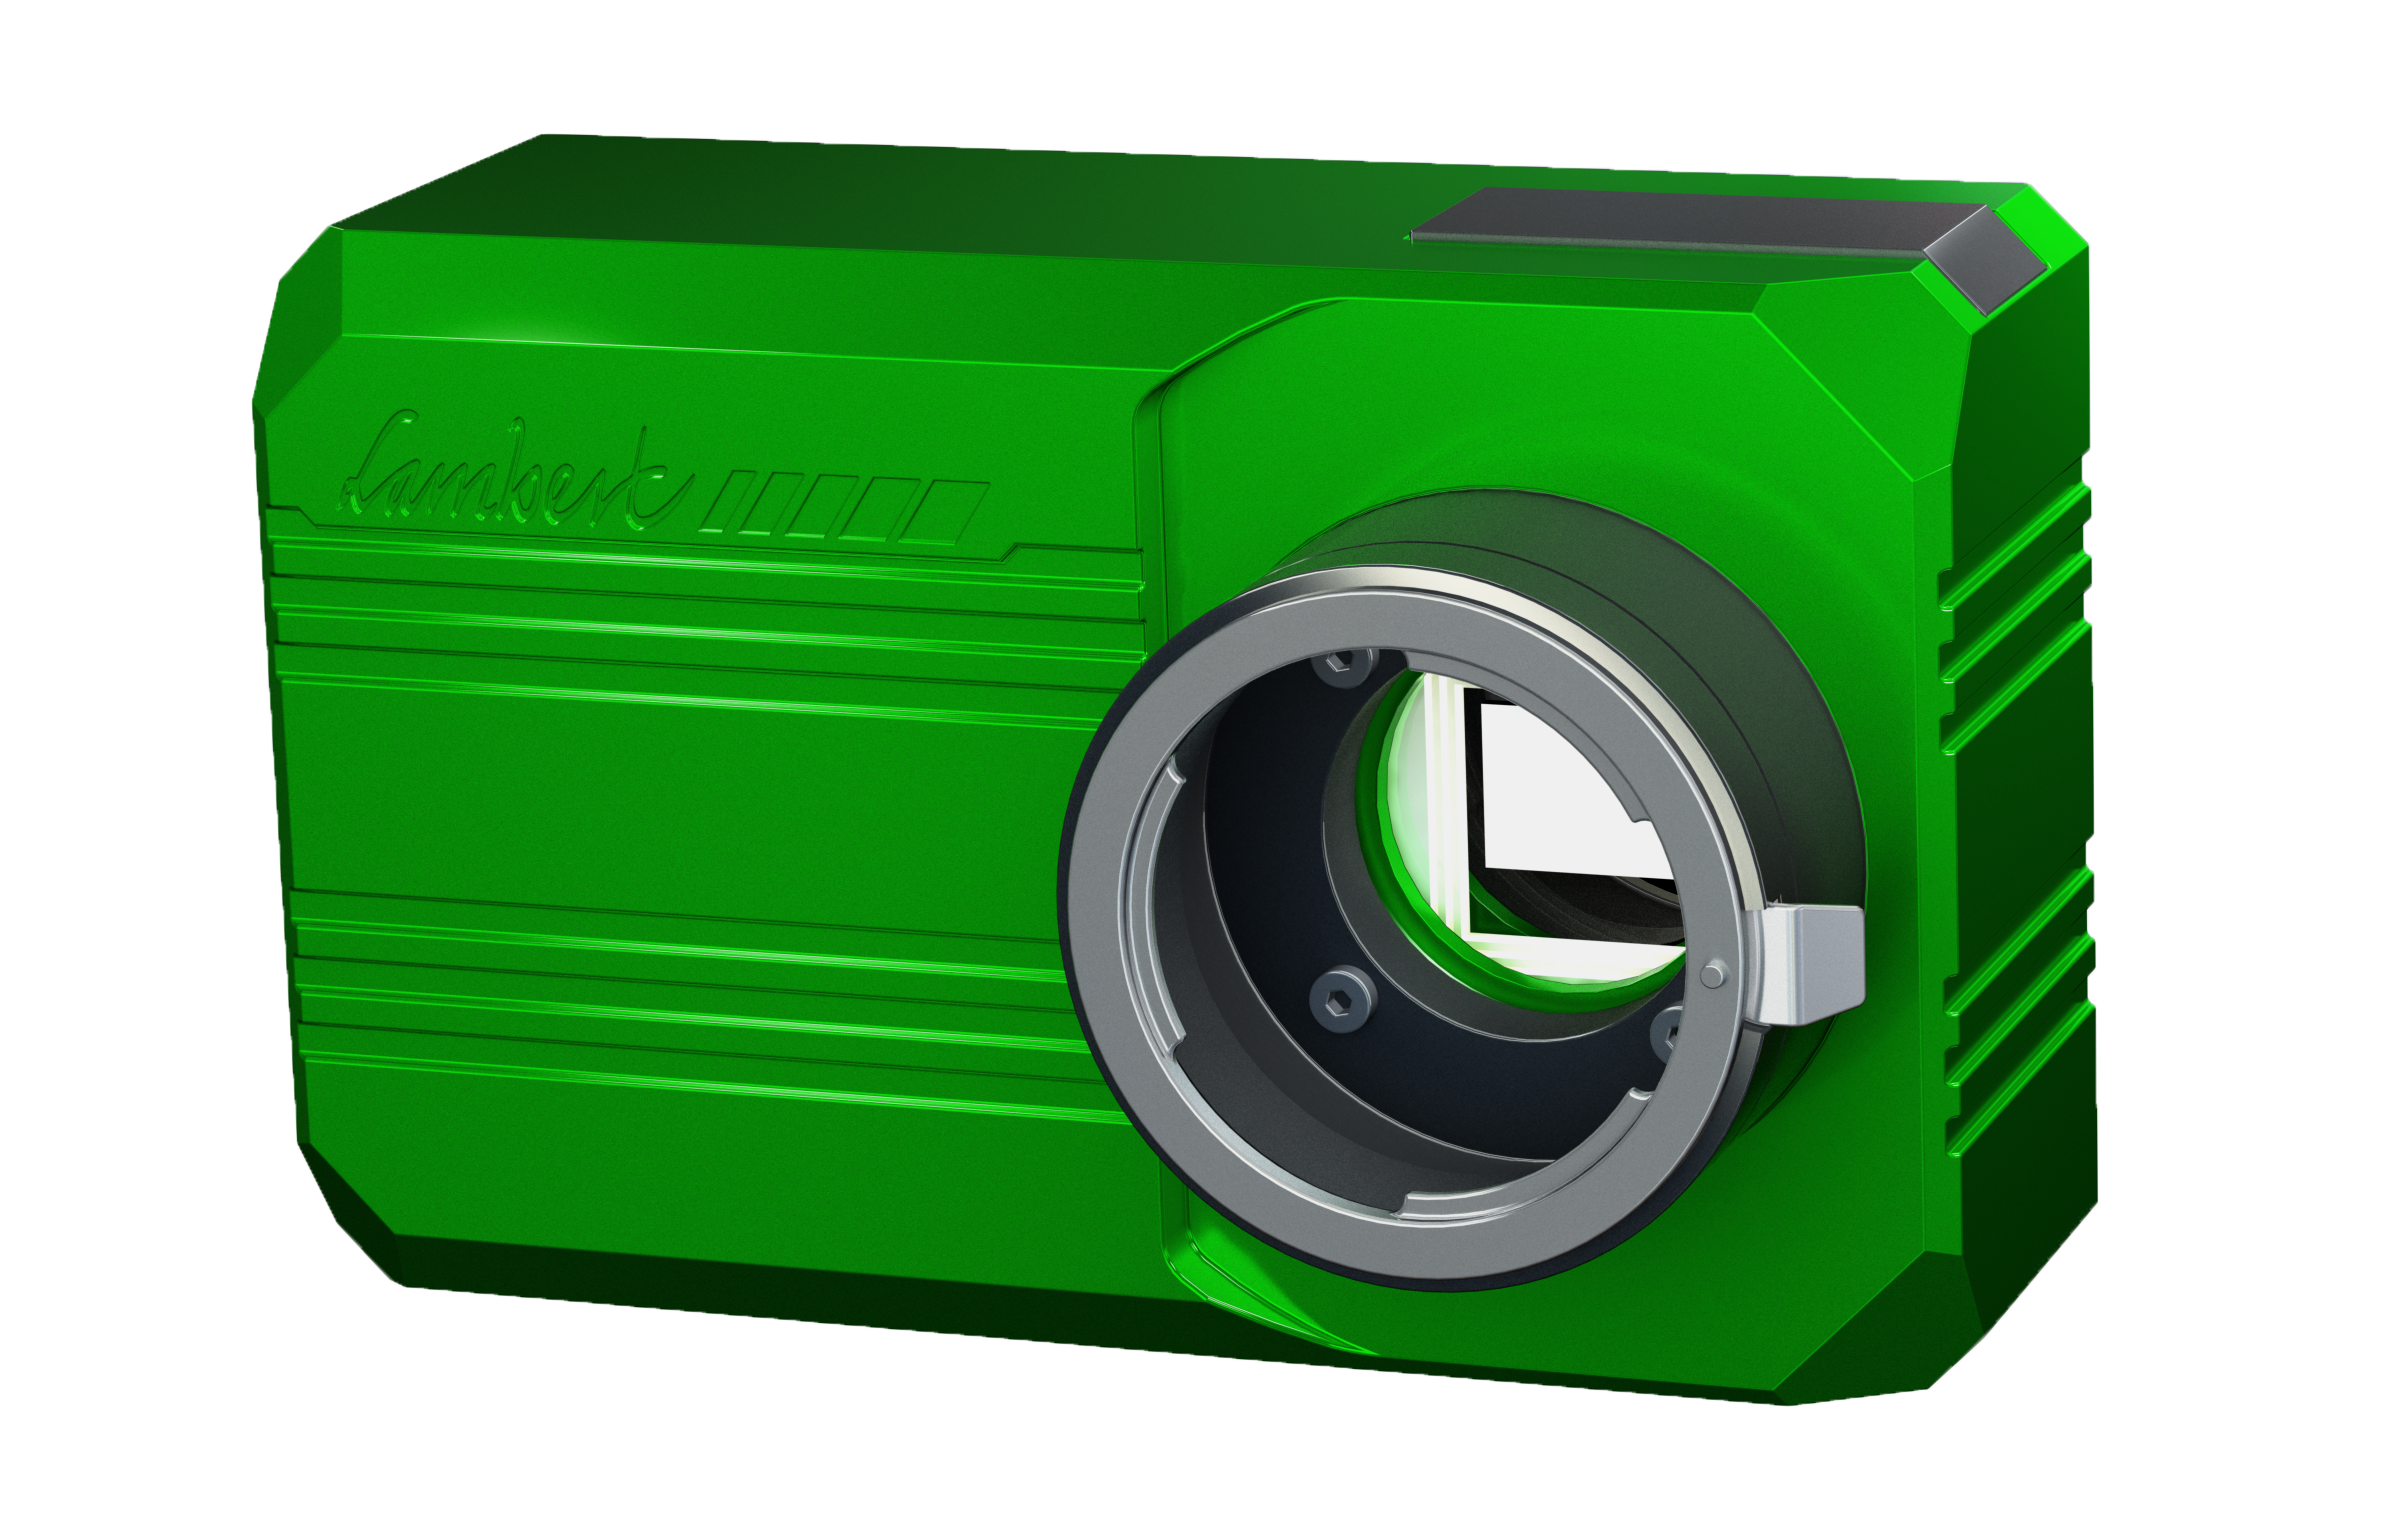 Lambert HS540M - The Lambert HS540M is a high-speed camera for research applications. It has up to 16 GB of internal storage and is ideal for scientific research and industrial R&D. After recording your data, you can review the results in our software and trim the high-speed video before exporting it to your computer.